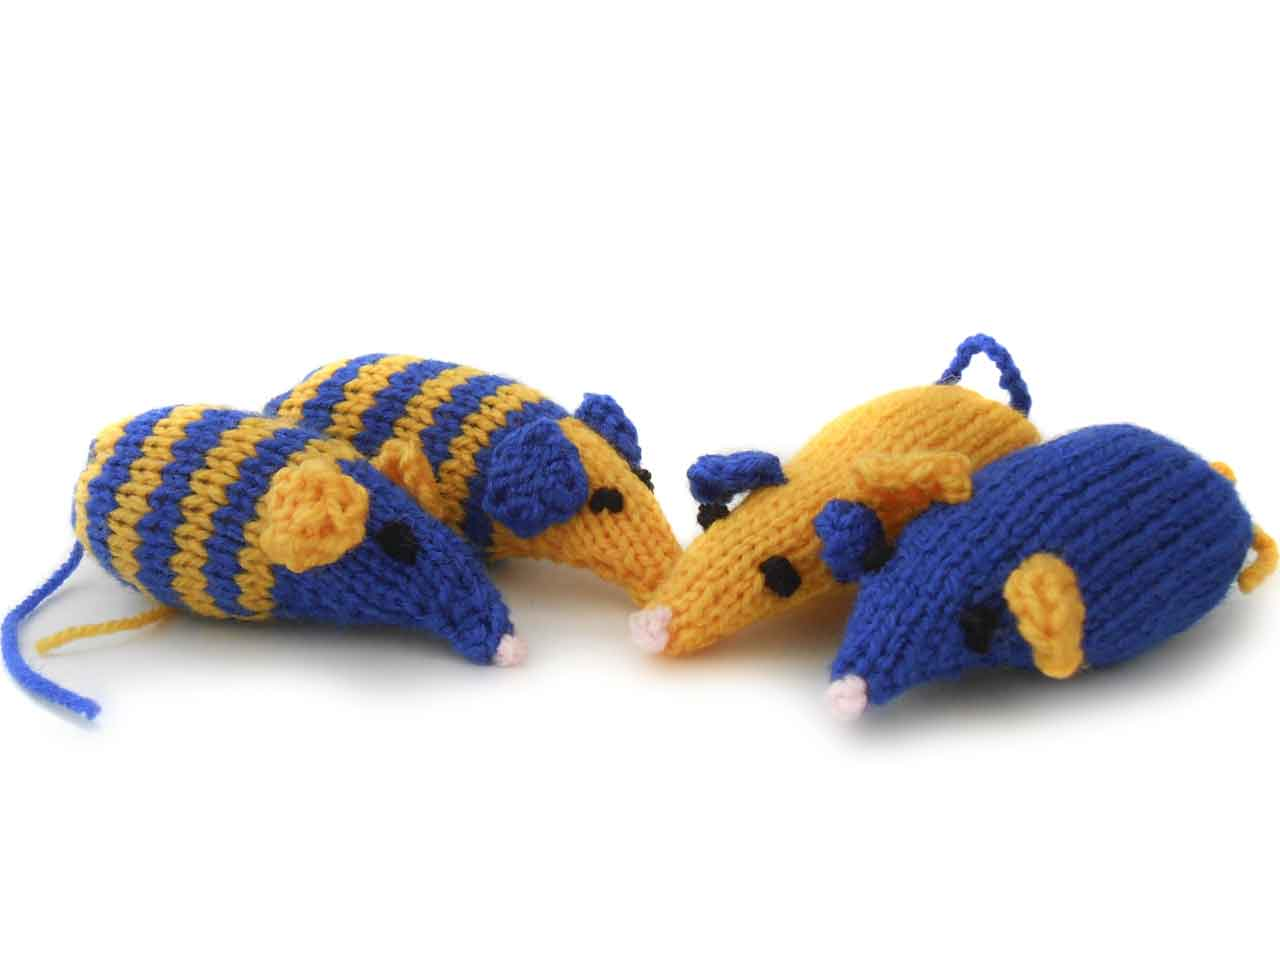 Knitted catnip mice - Saga